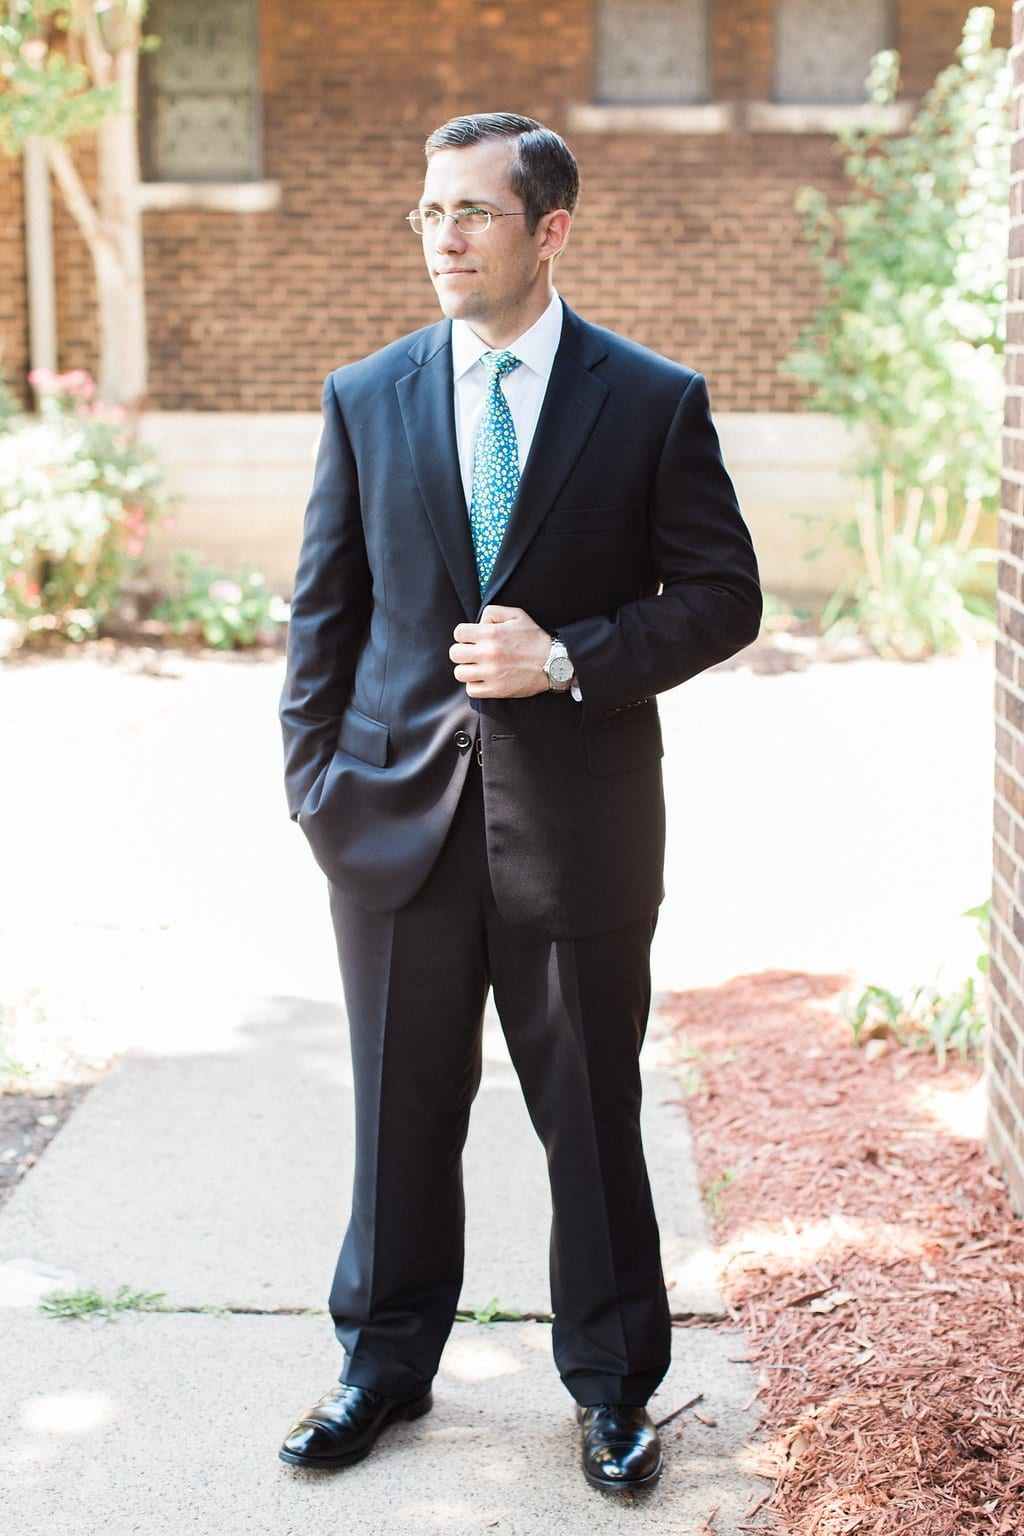 Groom portraits outside the St. Anselm Catholic Church - 1920's inspired wedding Grand Concourse